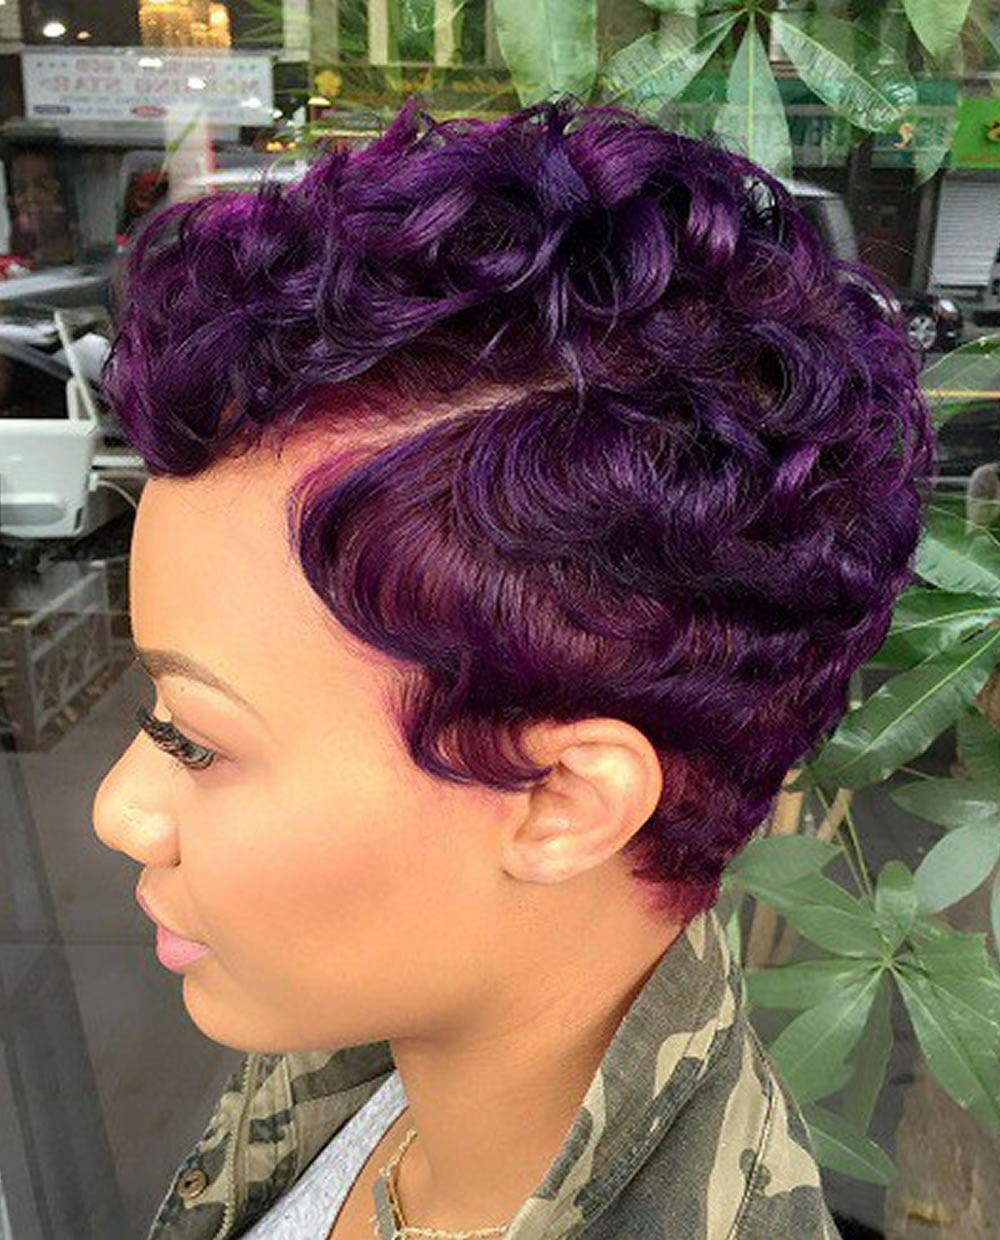 Short Haircuts African American Women 2018 Very Short Pixie Hair